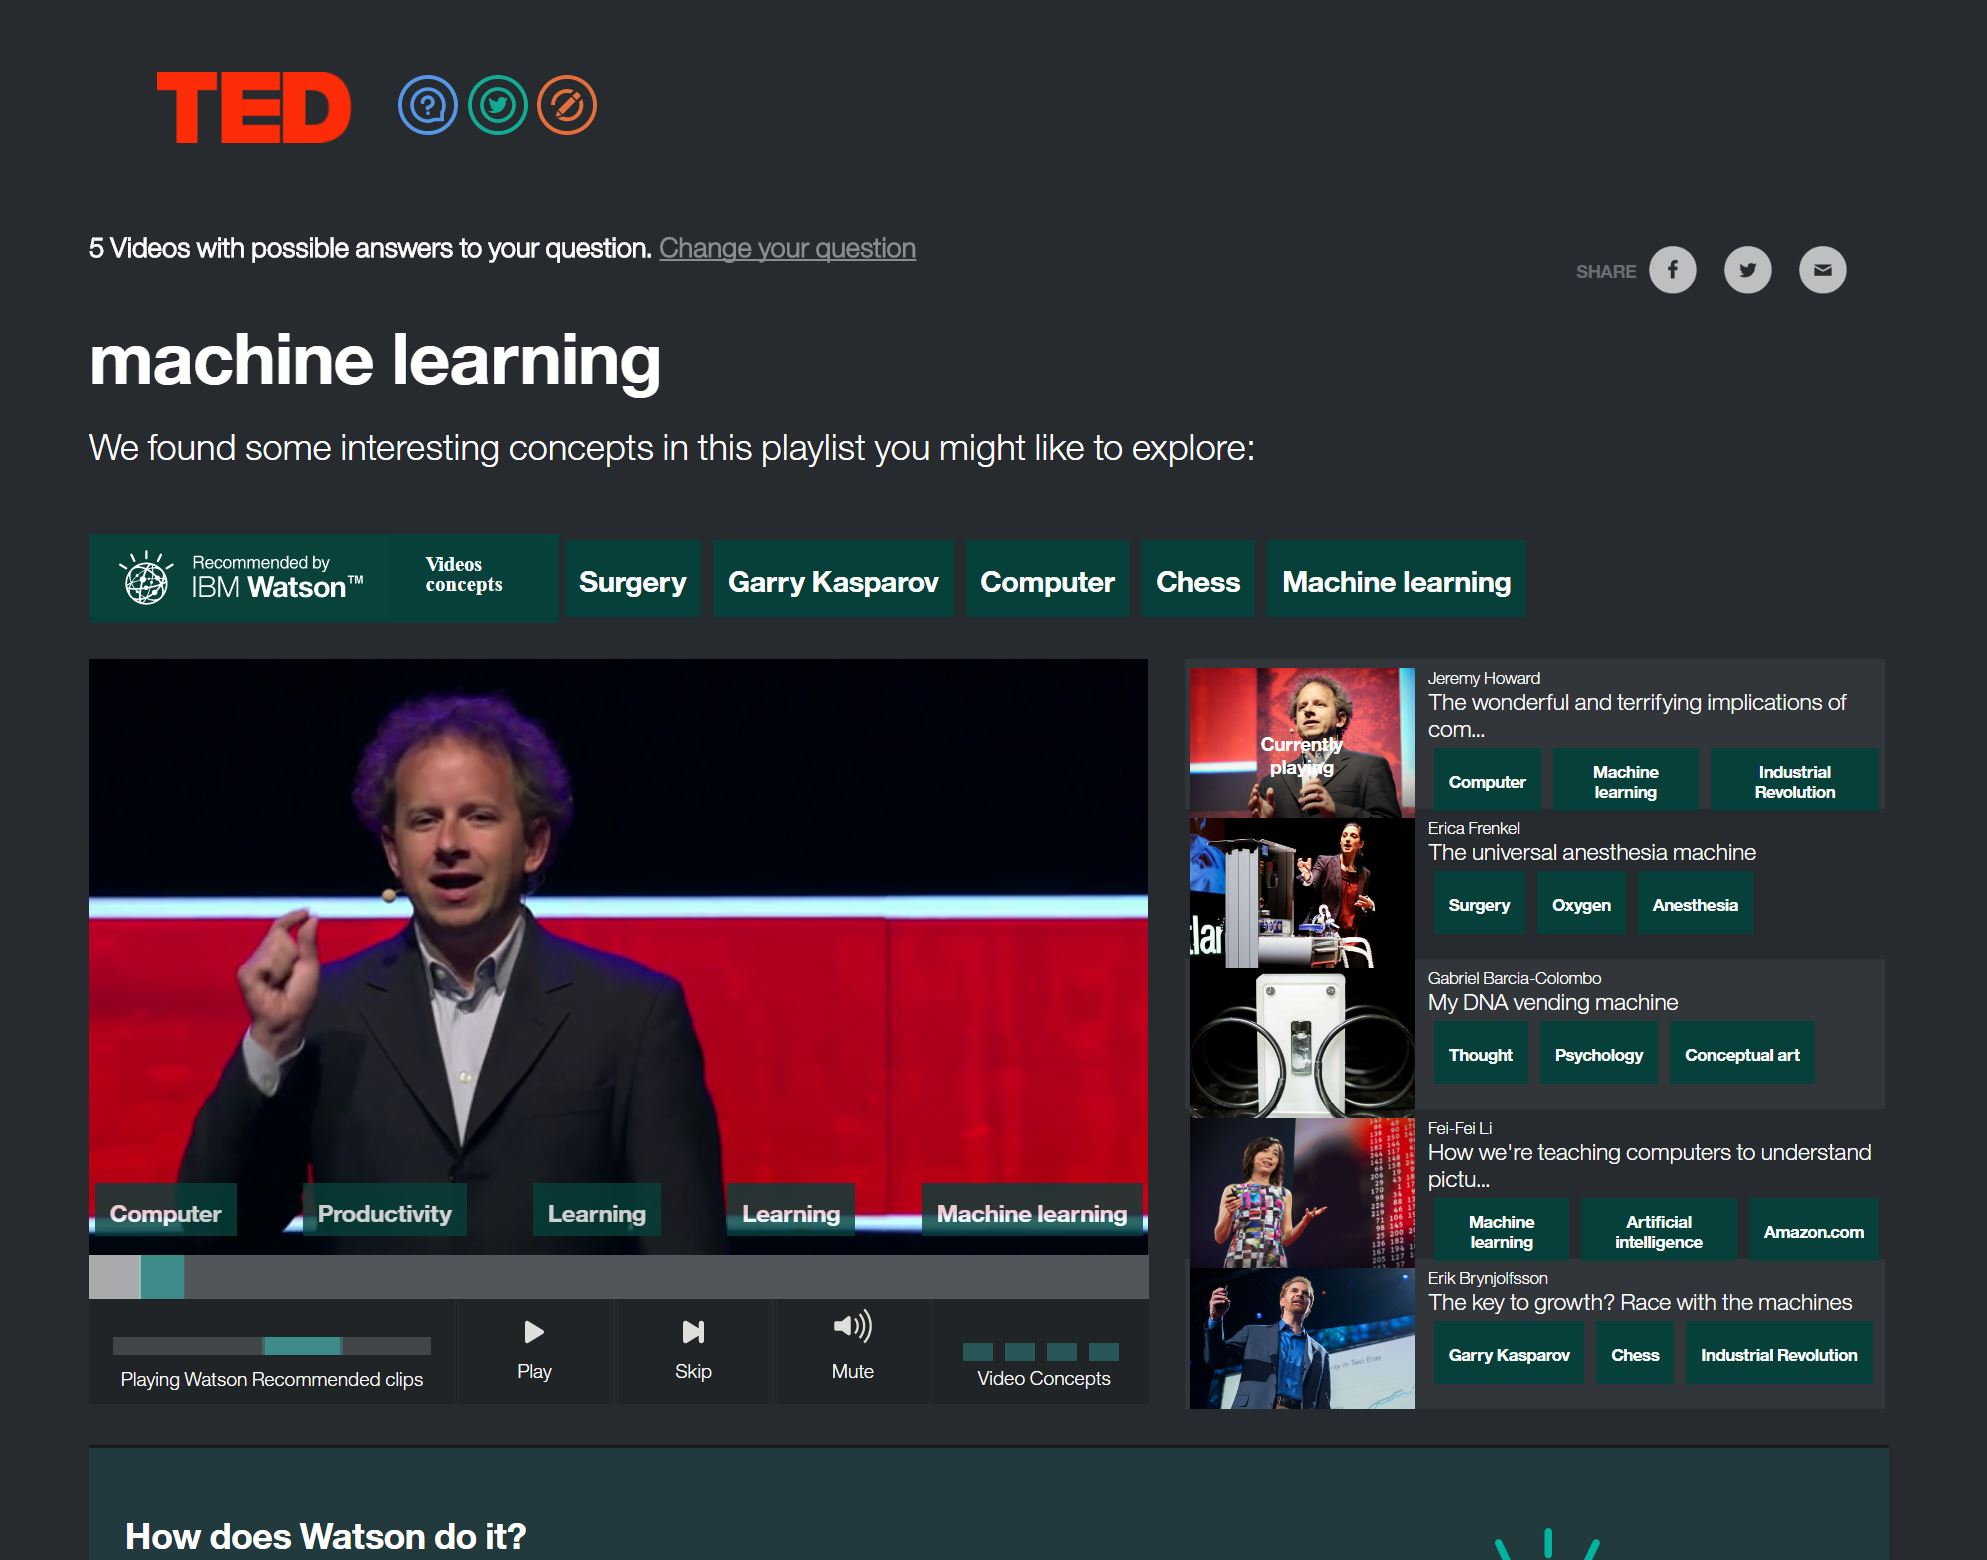 Ask your question: Watson answers with TED videos